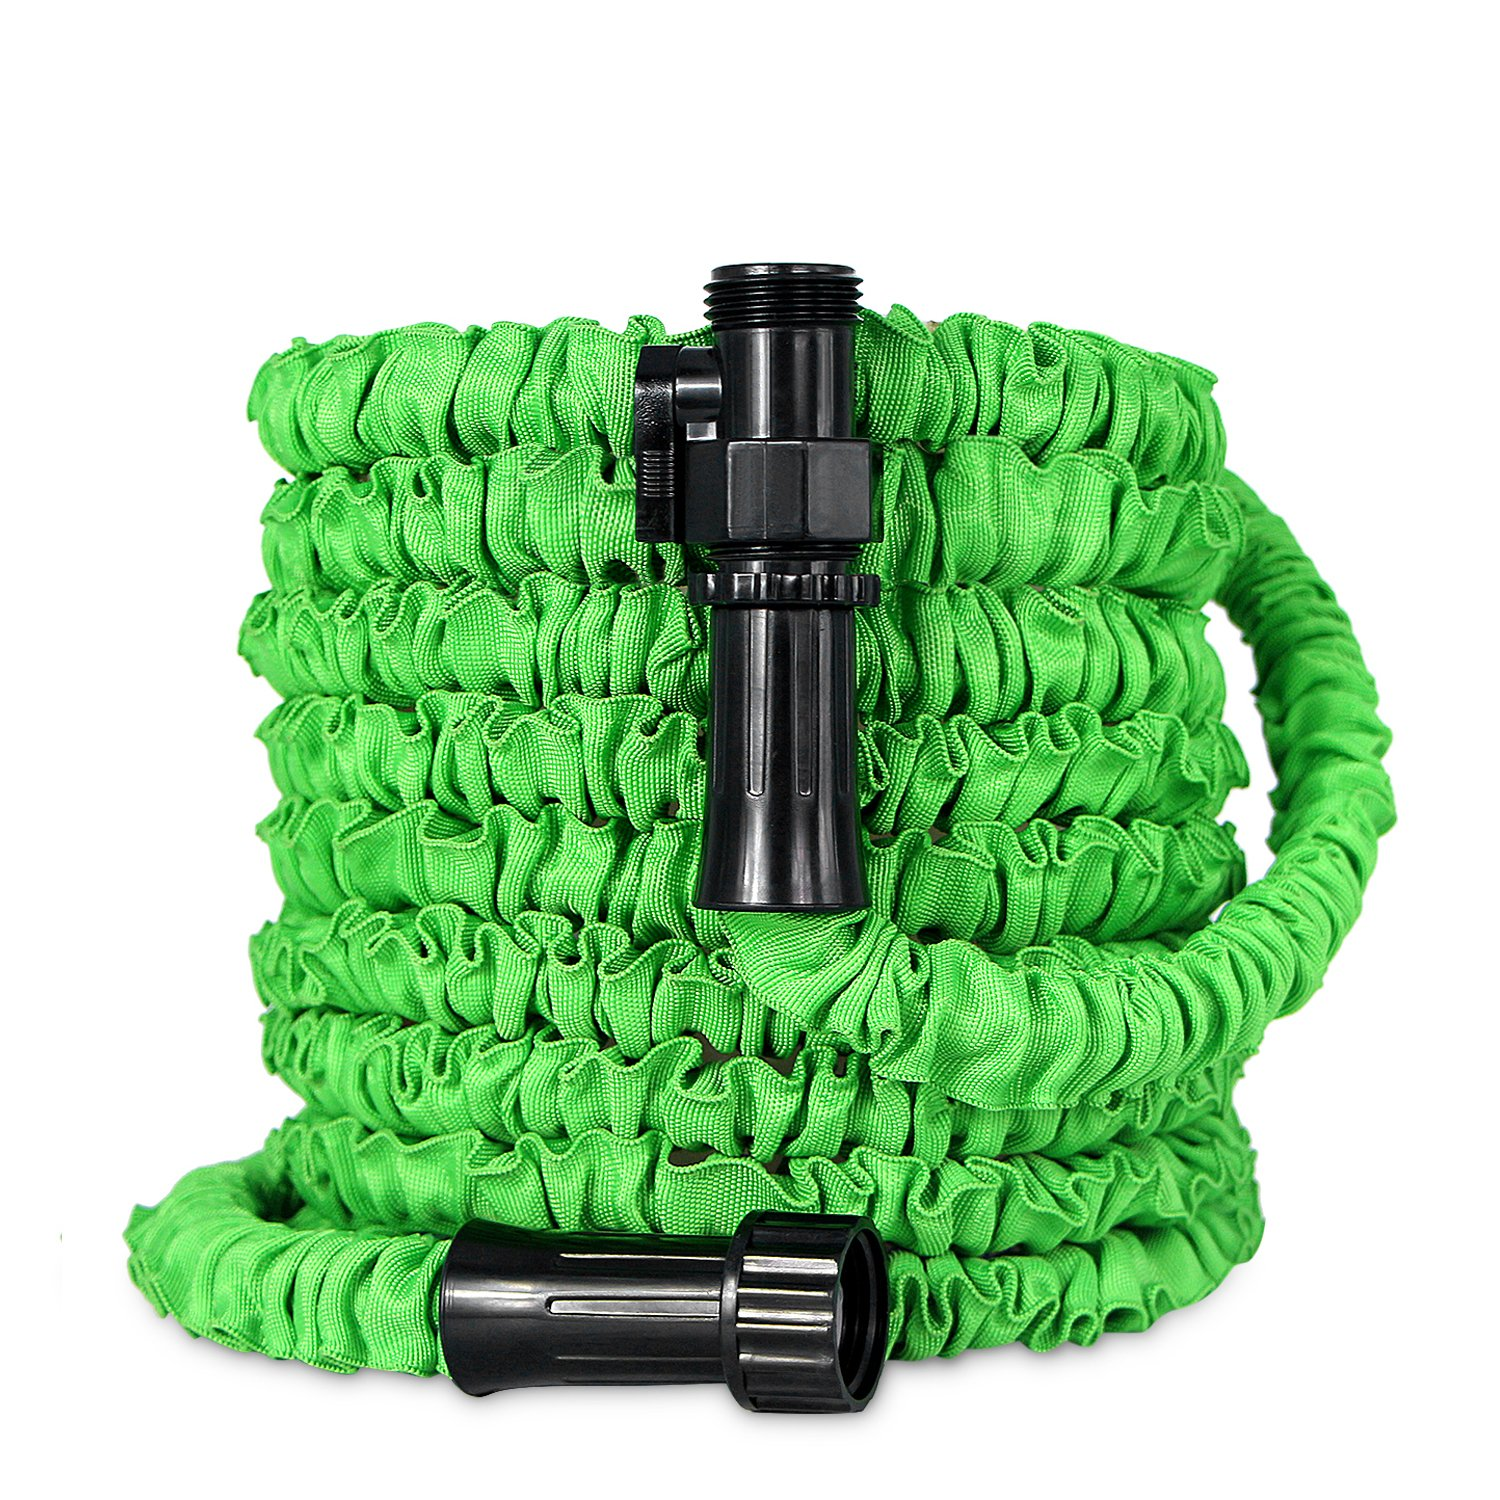 inGarden Garden Hose, Expandable Water Hose,3 Times Expanding,100ft Flexible Lightweight Hose With Storage Bag For Washing Car,Watering Flowers,Cleaning Windows/Floor,Suitable For Home and Commer